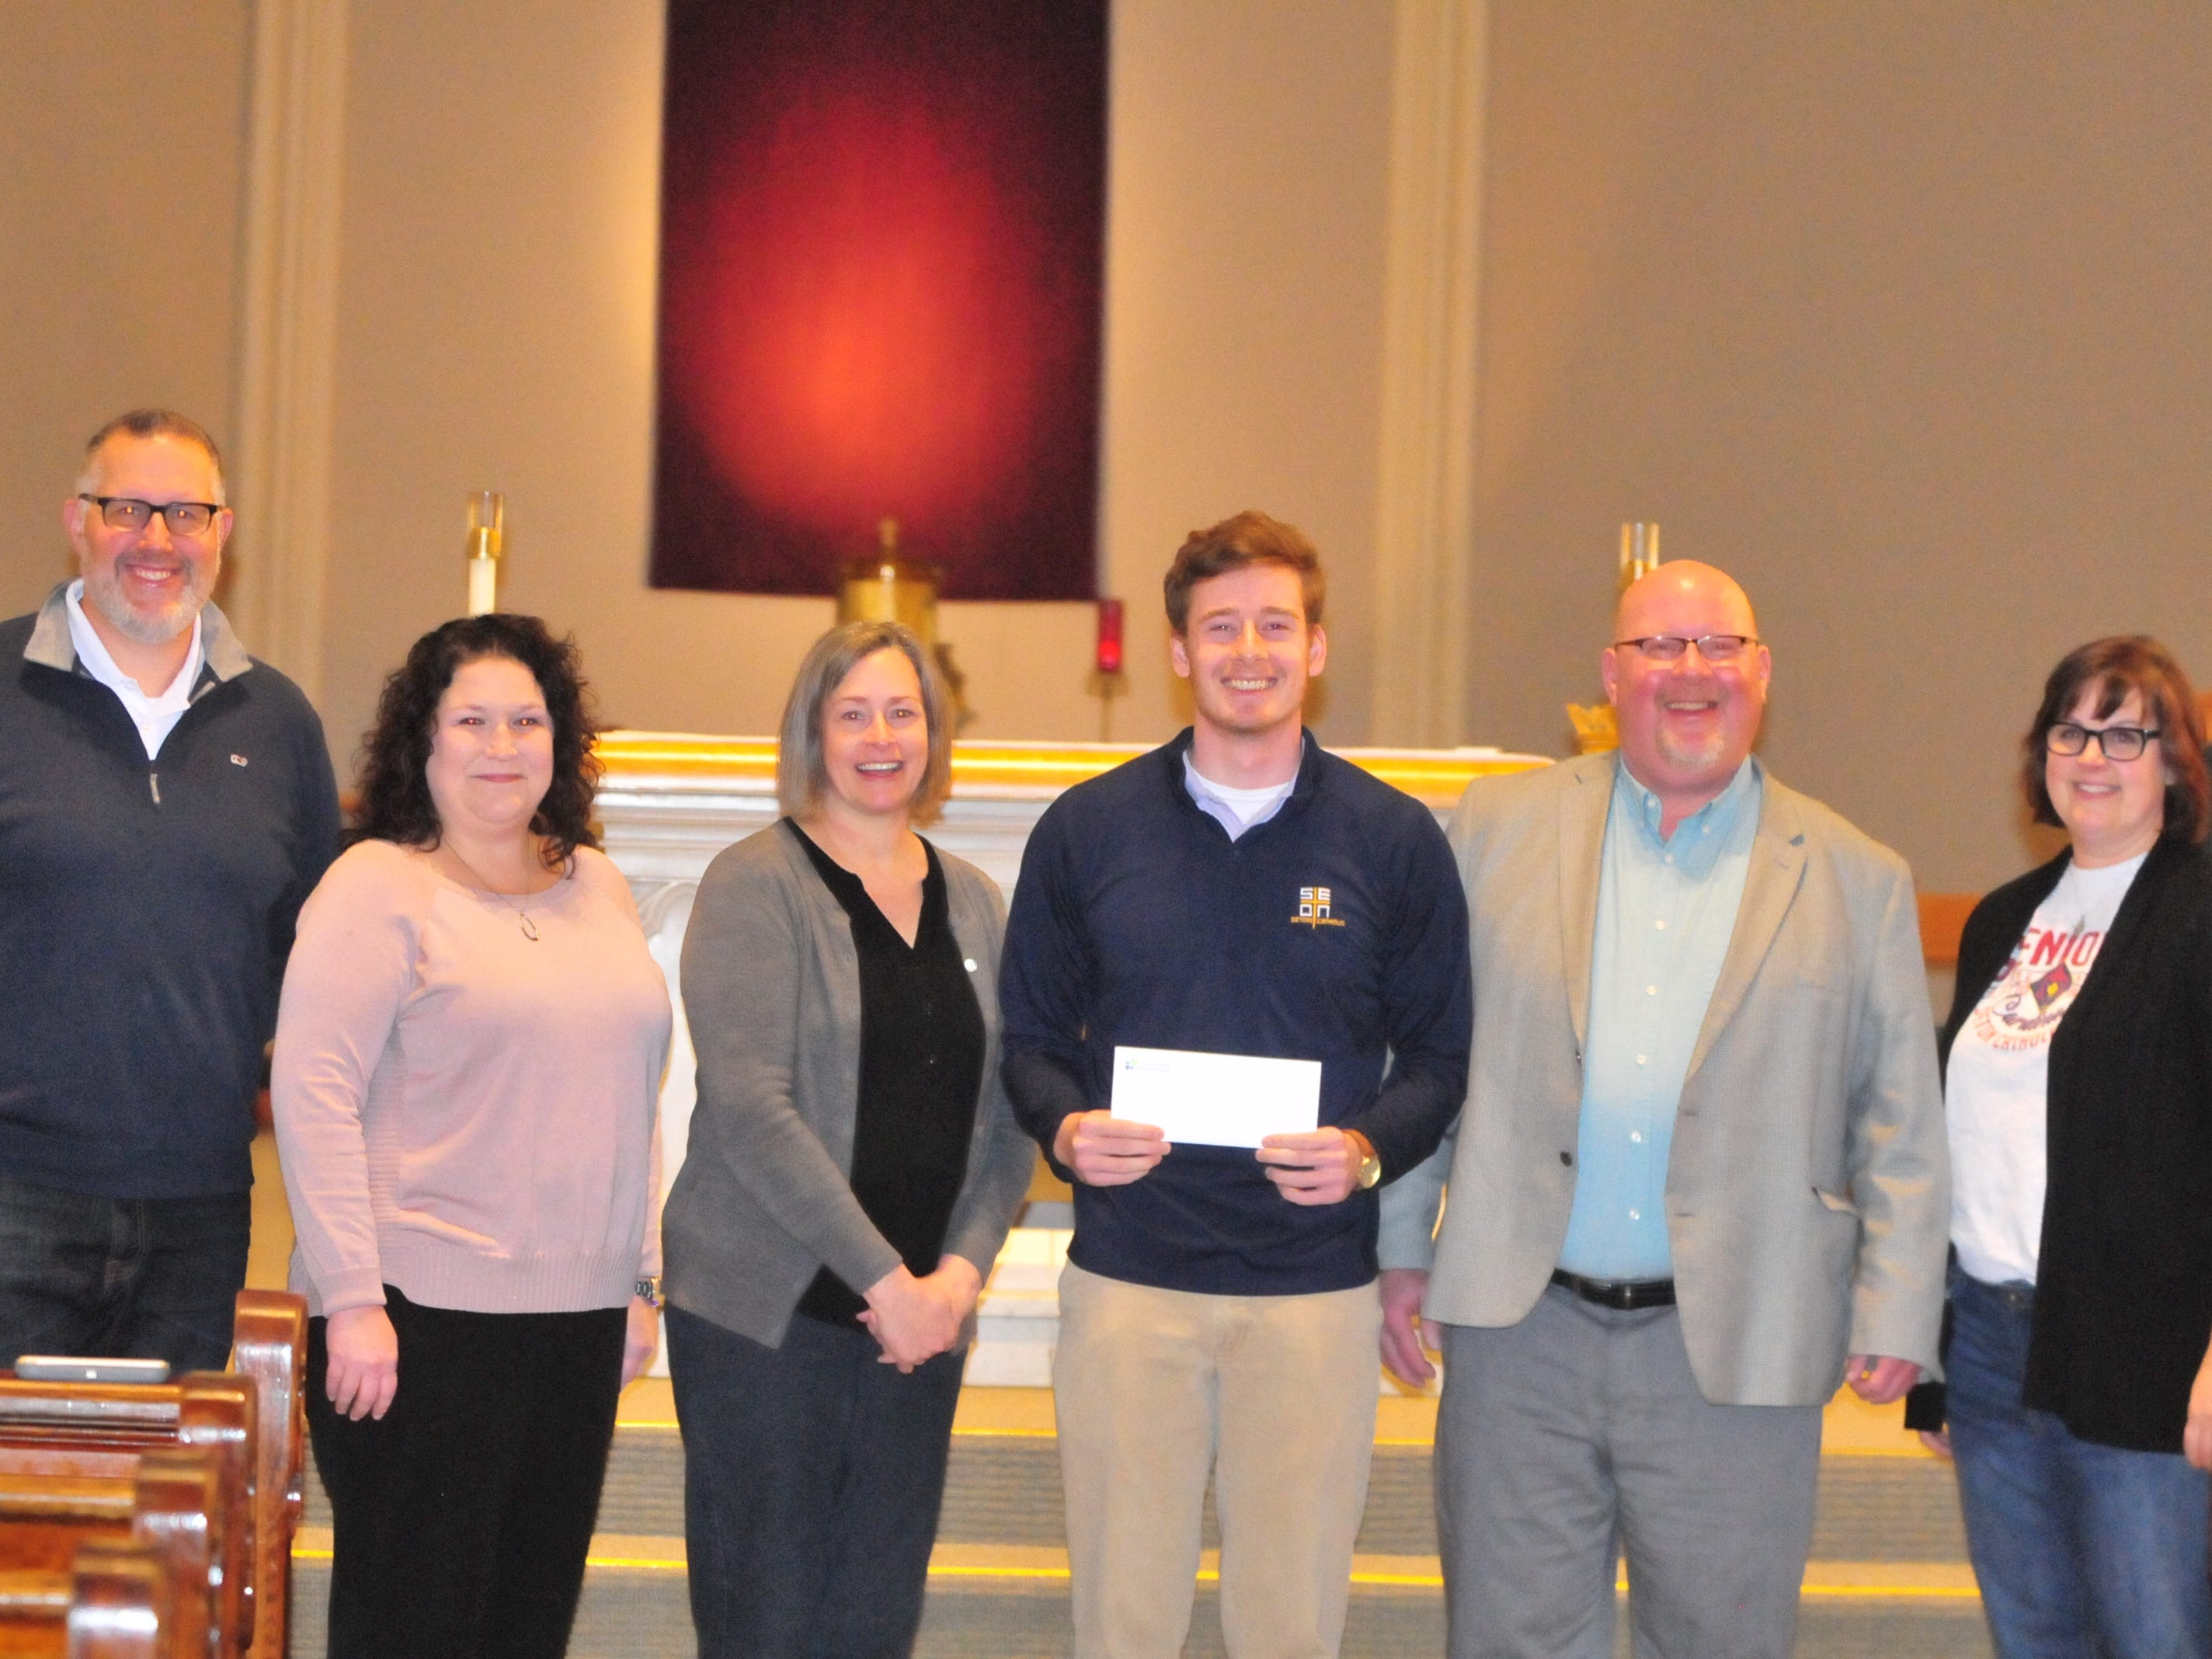 Seton Catholic senior Joseph Lahmann, third from right, with principal John Markward (from left), Wayne County Foundation Program Officer Lisa Bates, mother Margaret Rees Lahman, father Patrick Lahmann, and guidance counselor Shantel Cartwright after finding out Joseph won the Lilly Endowment Community Scholarship after morning mass at St. Andrew's Catholic Church in Richmond Tuesday, Dec. 11, 2018.